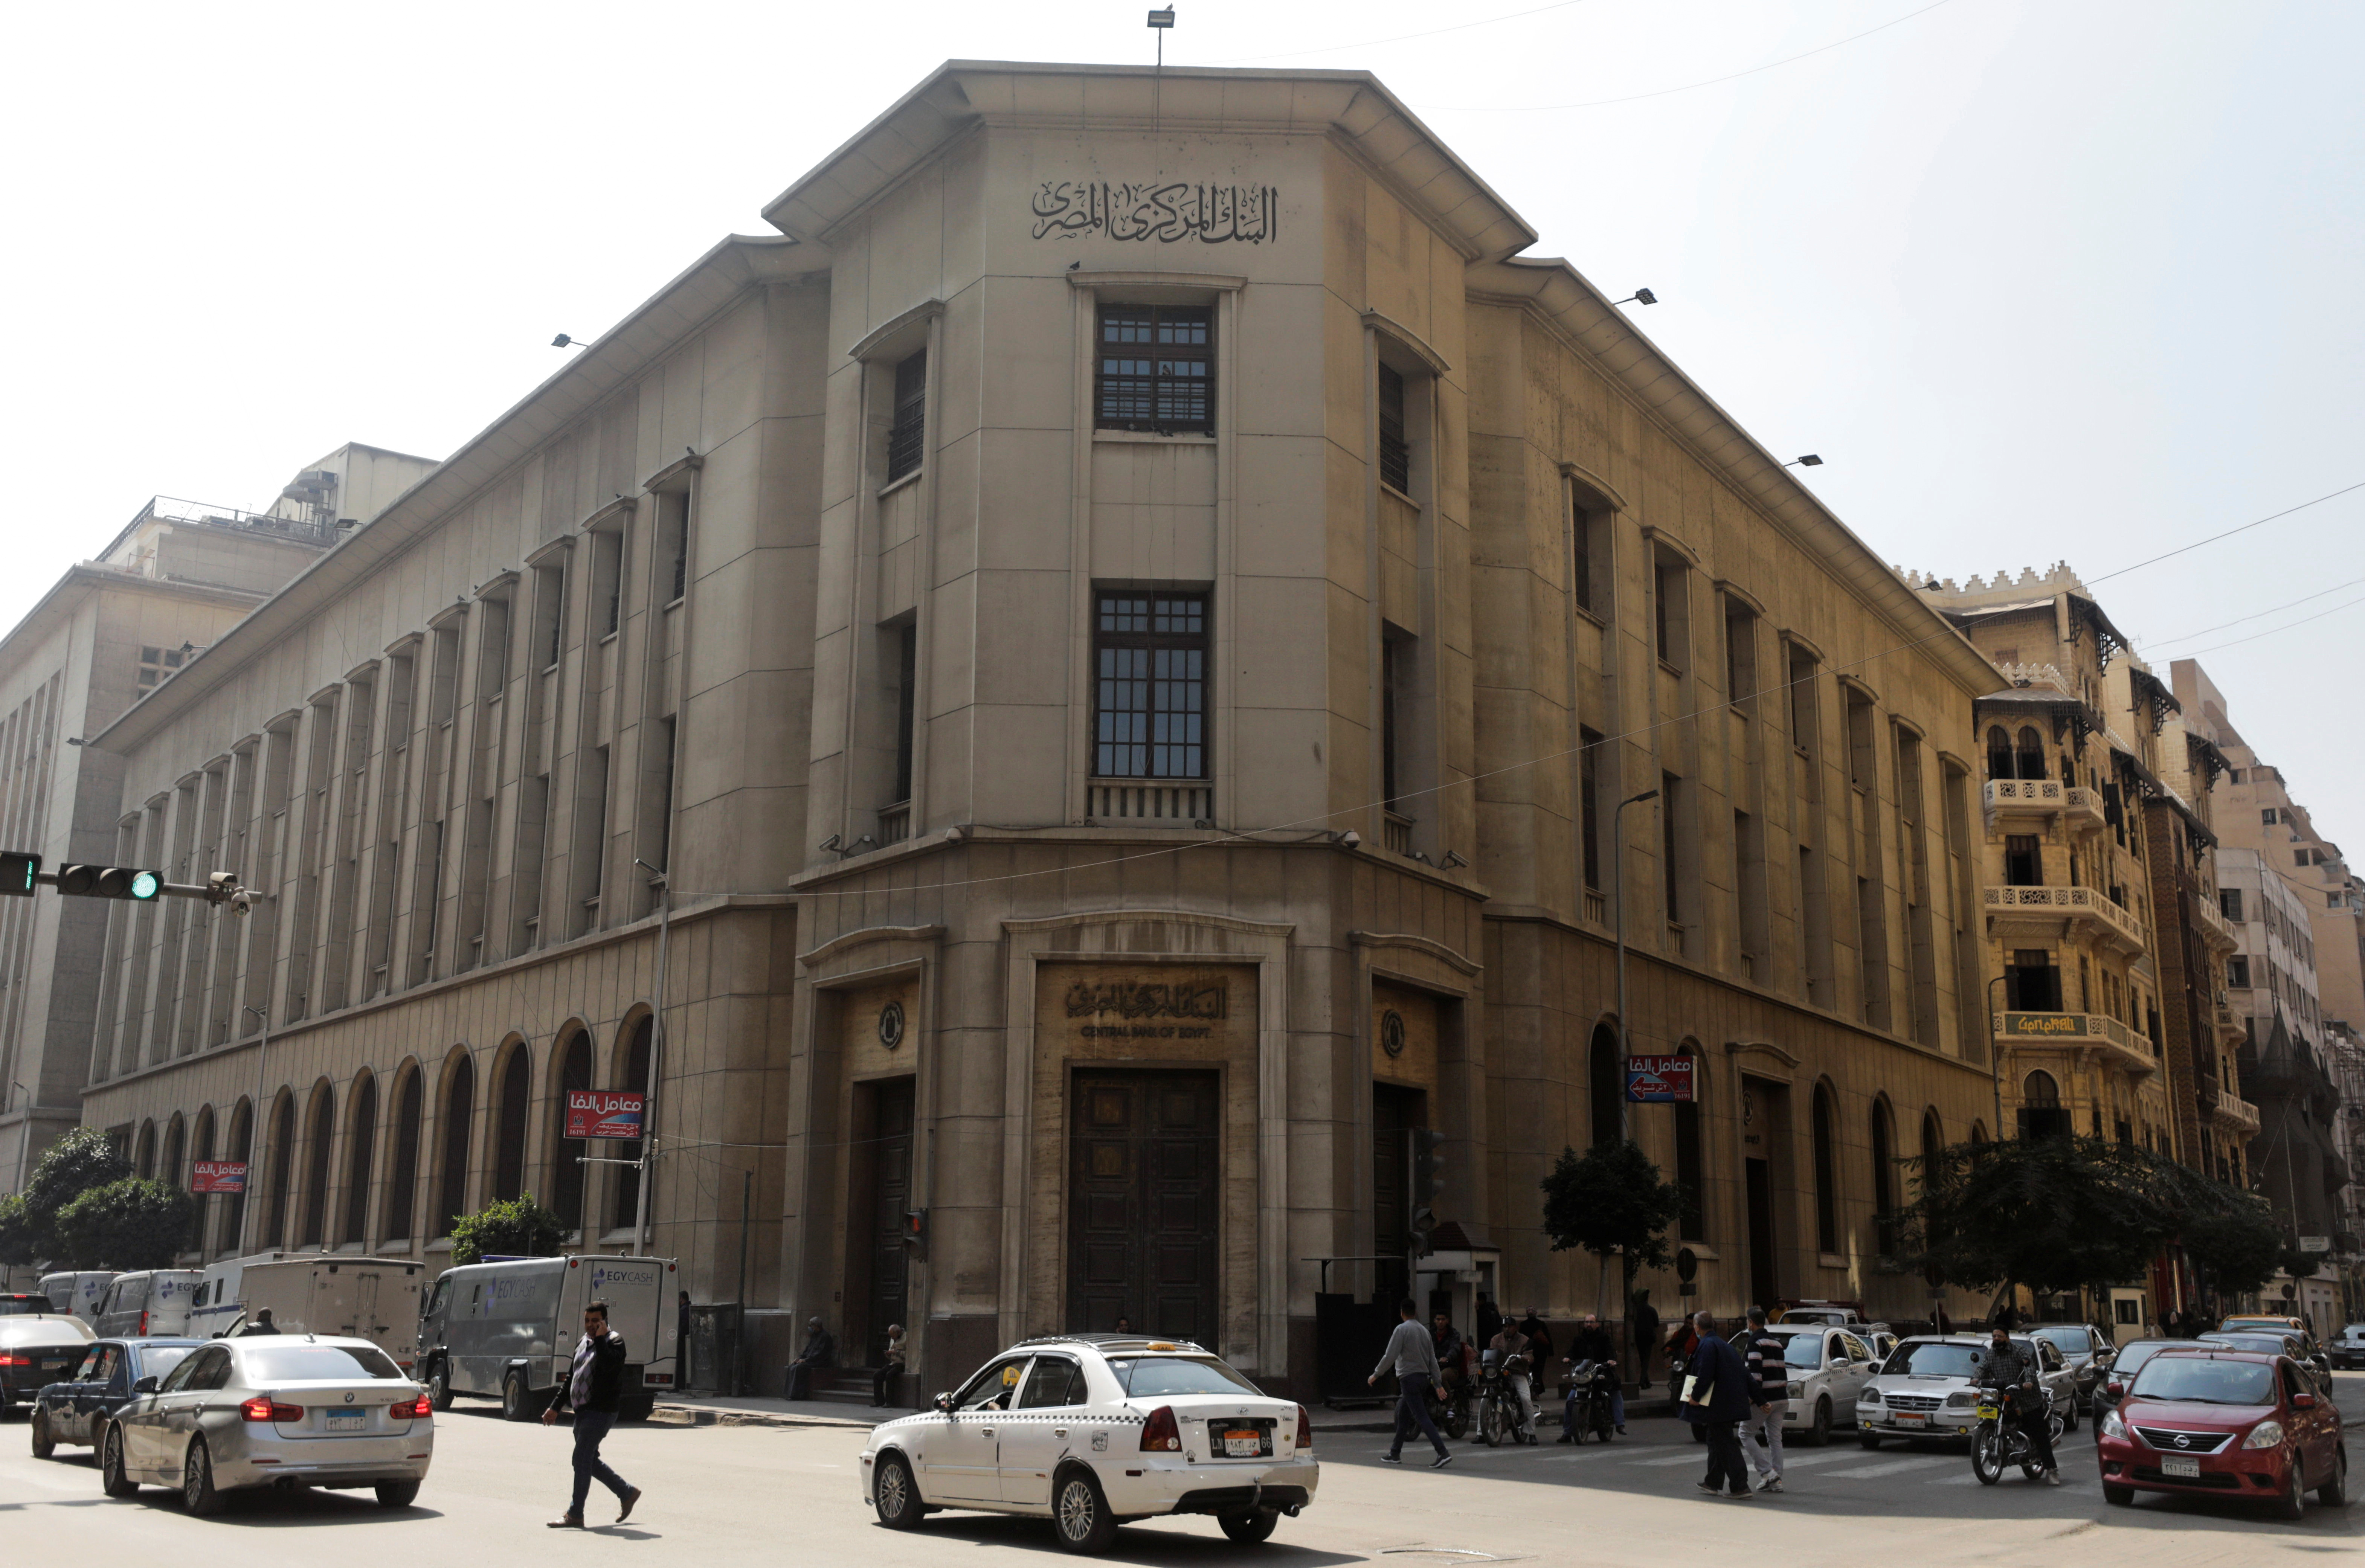 Central Bank of Egypt's headquarters is seen amid the coronavirus disease (COVID-19) pandemic in downtown Cairo, Egypt February 25, 2021. REUTERS/Mohamed Abd El Ghany